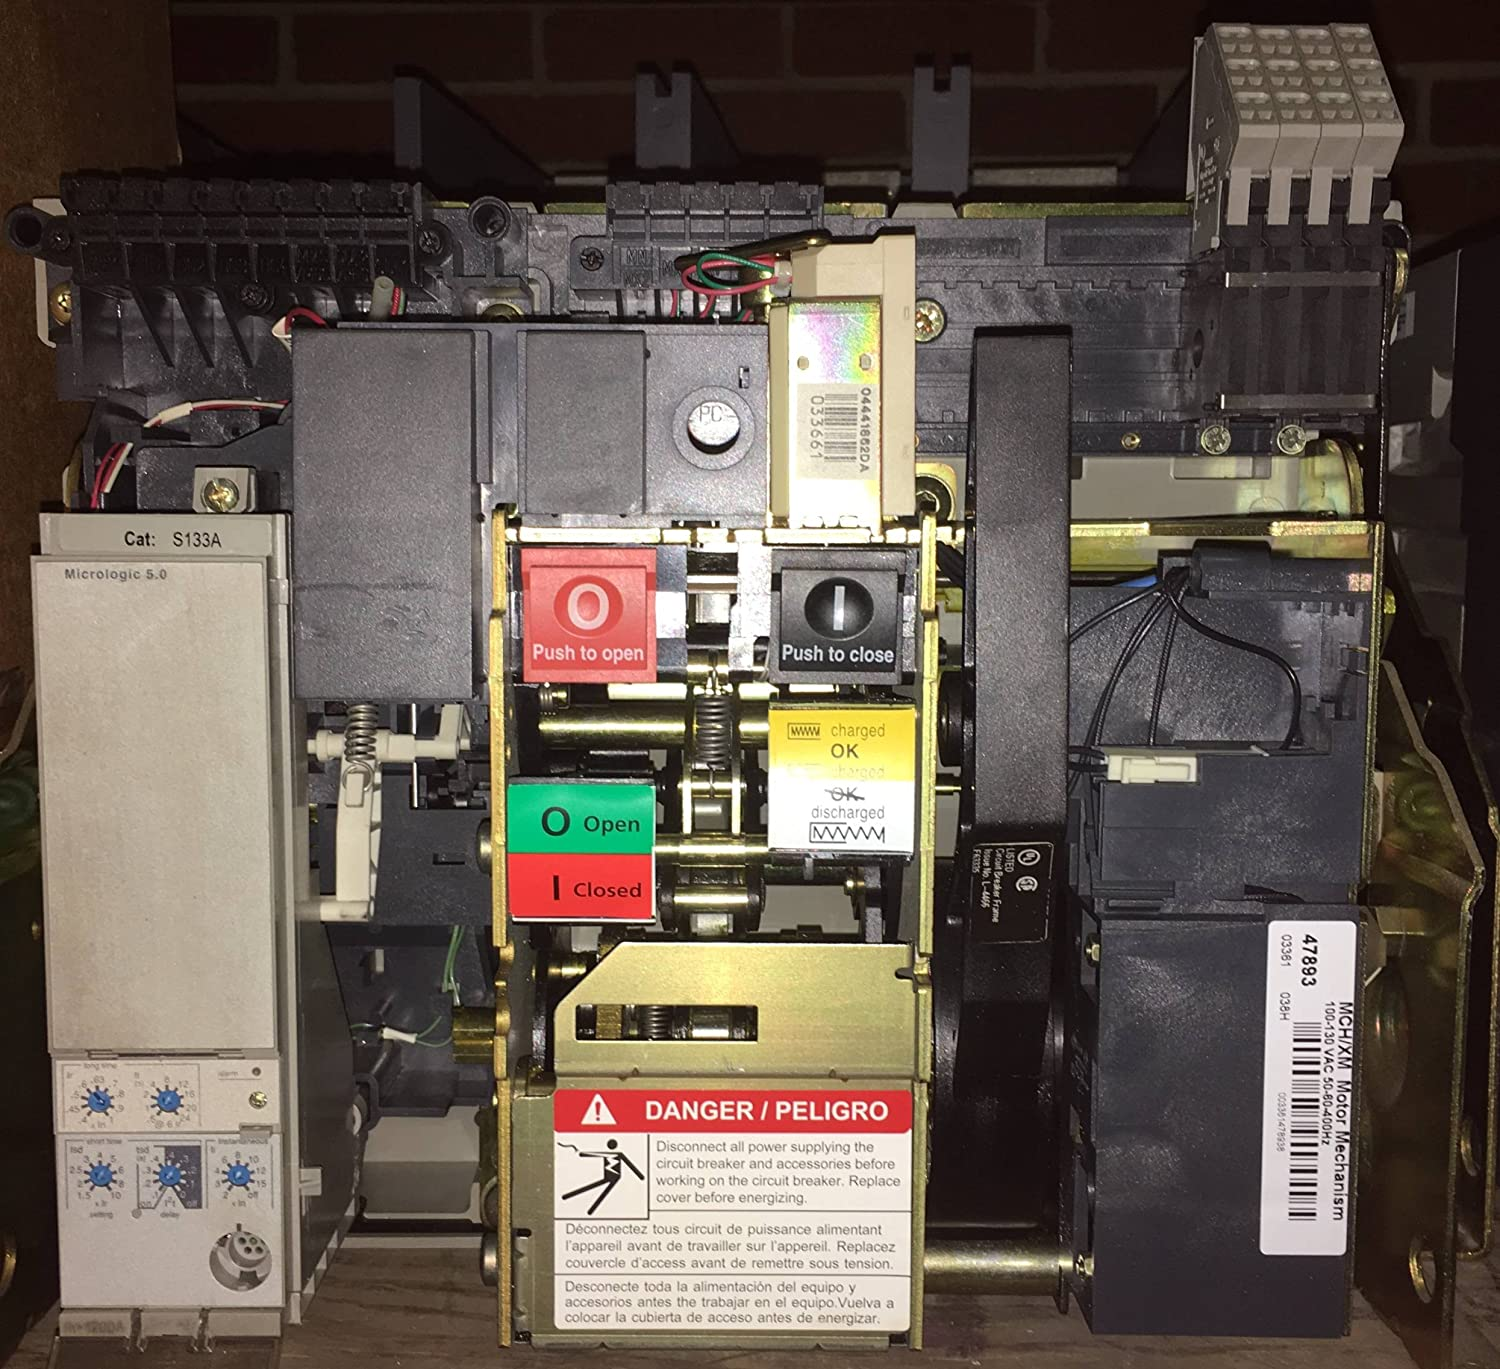 Square D NW12N 1200A EO Masterpact Circuit Breaker w/Shunt NW 12 N 1200 Amp LSI: Amazon.com: Industrial & Scientific